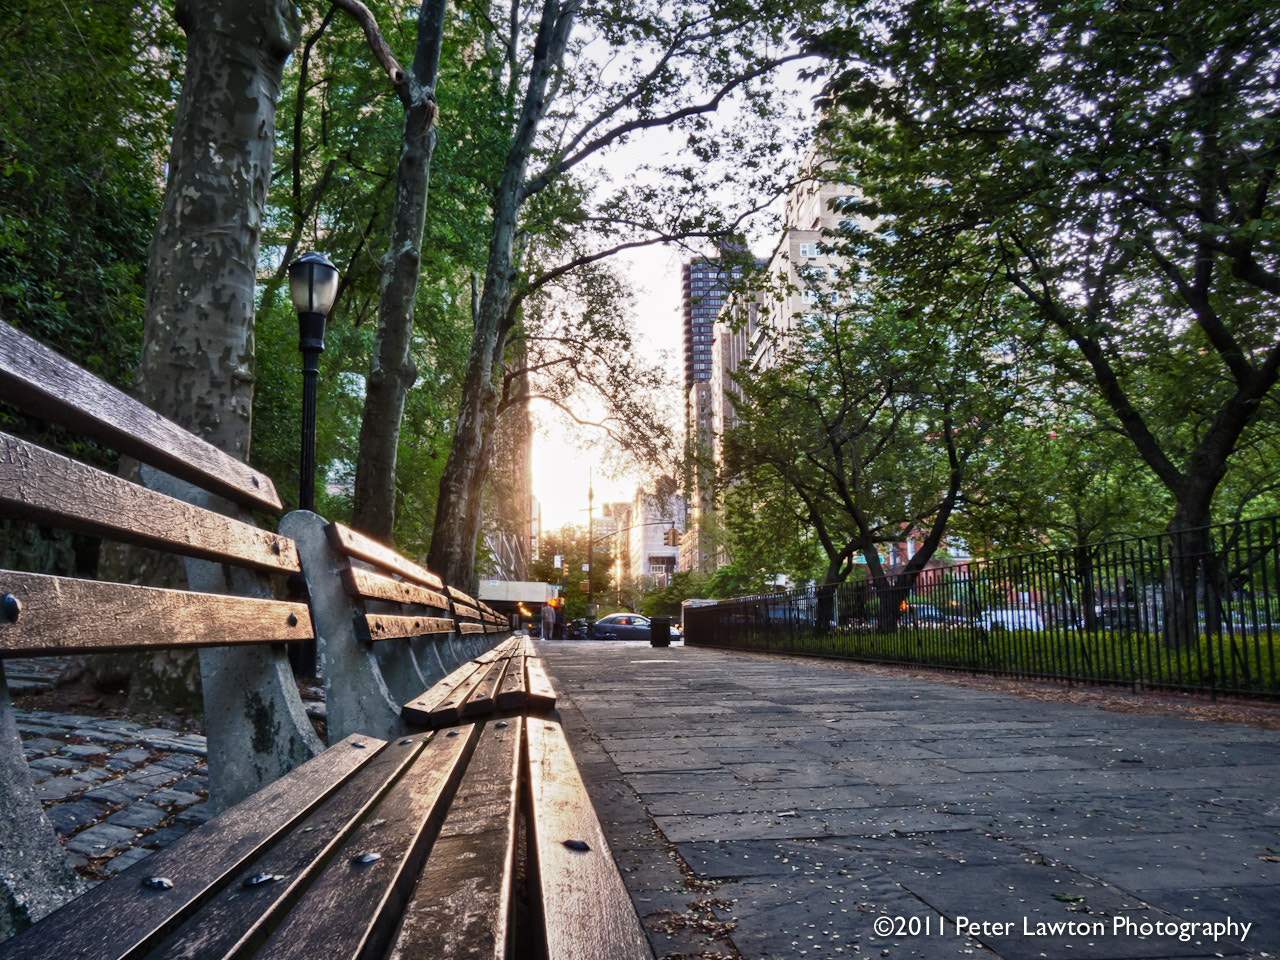 Photograph Park Bench at Sunset by Peter Lawton on 500px